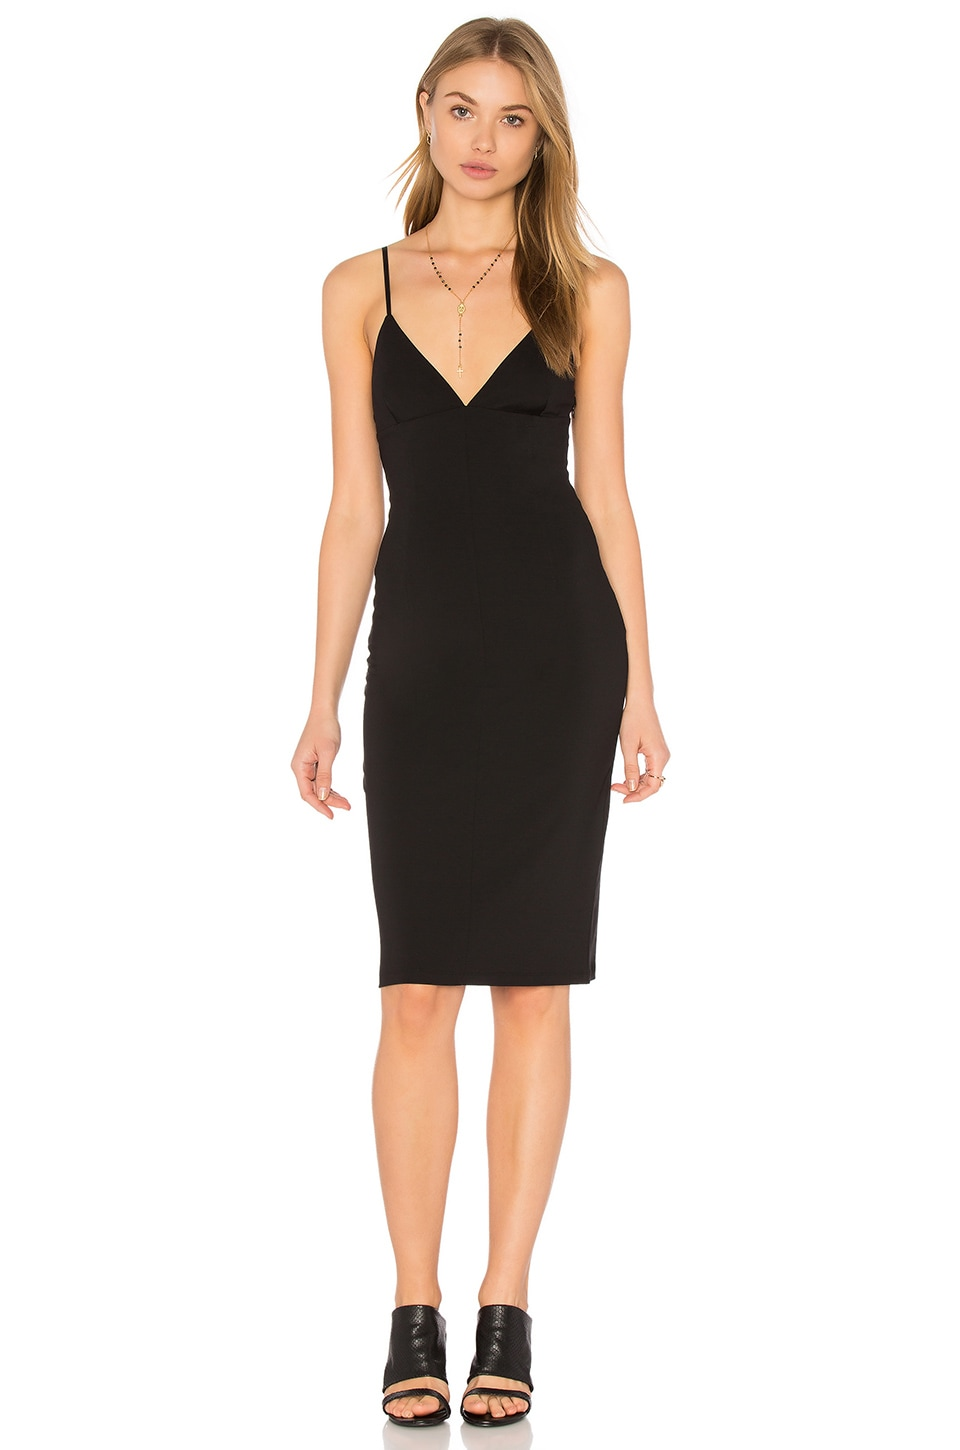 Fitted Spaghetti Strap Dress by T by Alexander Wang